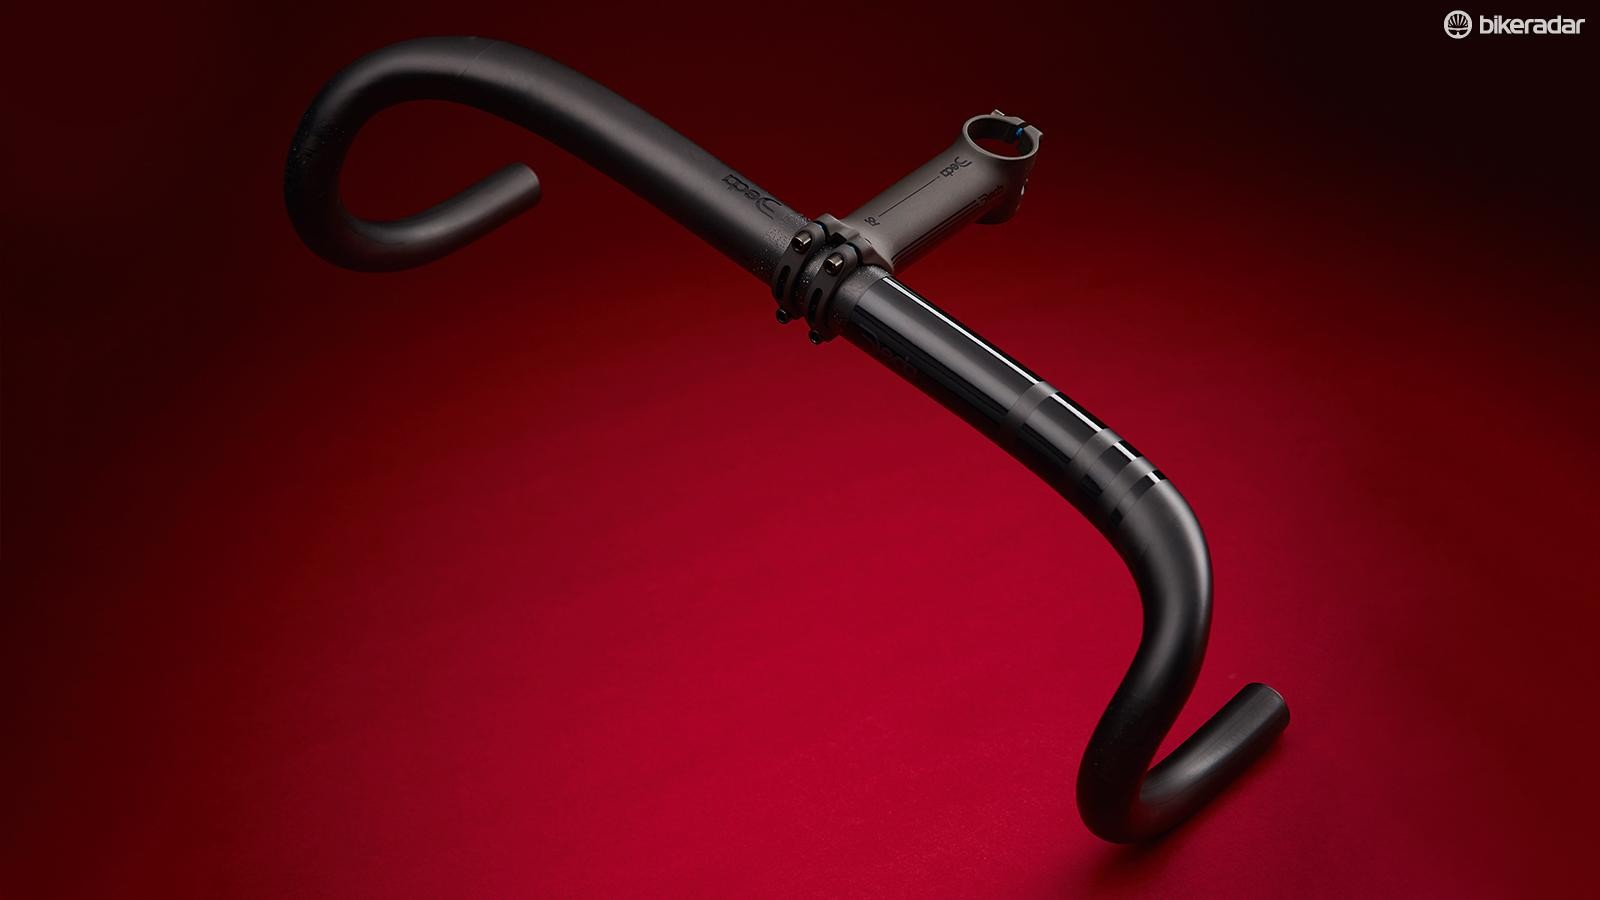 Deda's bar takes the Rapid Hand Movement (RHM) bend shape